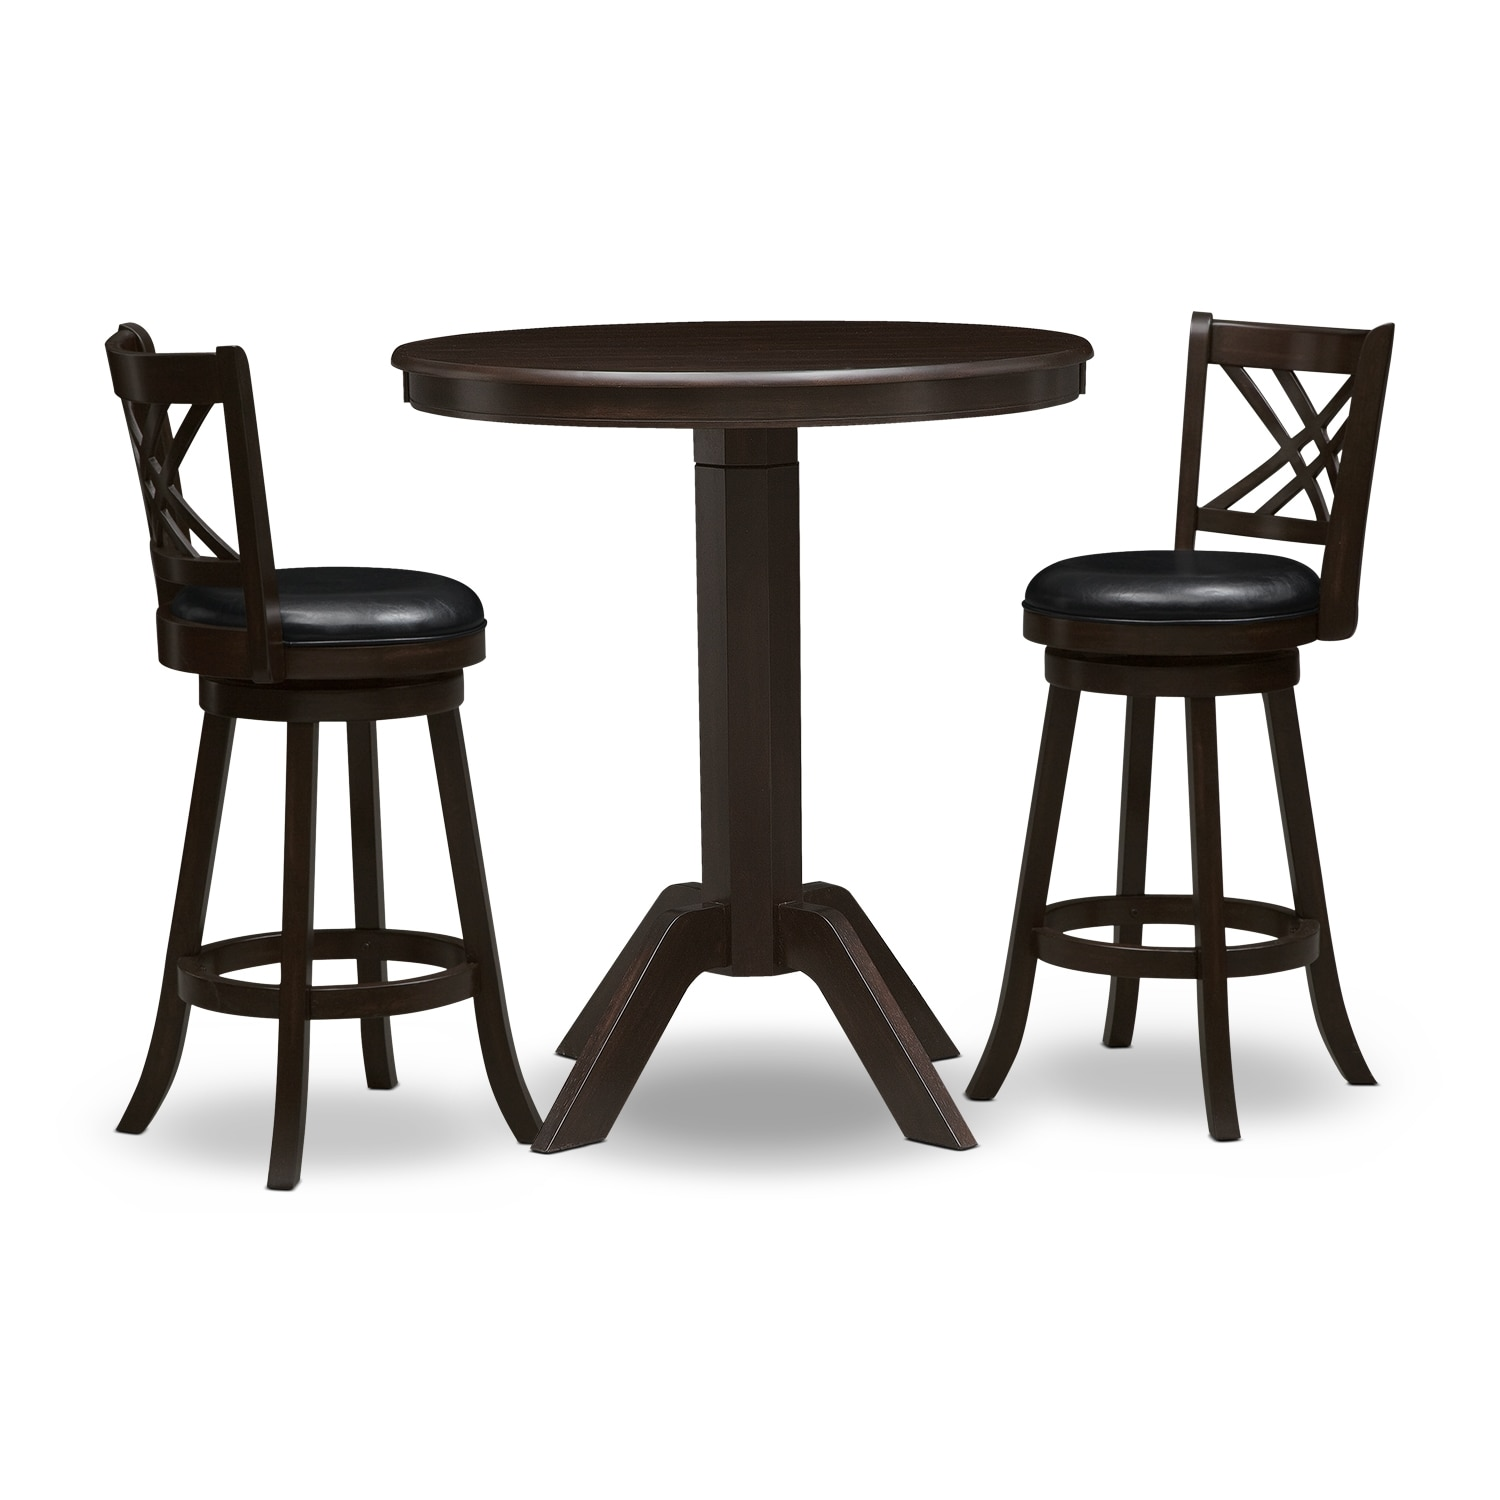 Dining Room Furniture - Concord Pub Table and 2 Merrimac Barstools - Merlot